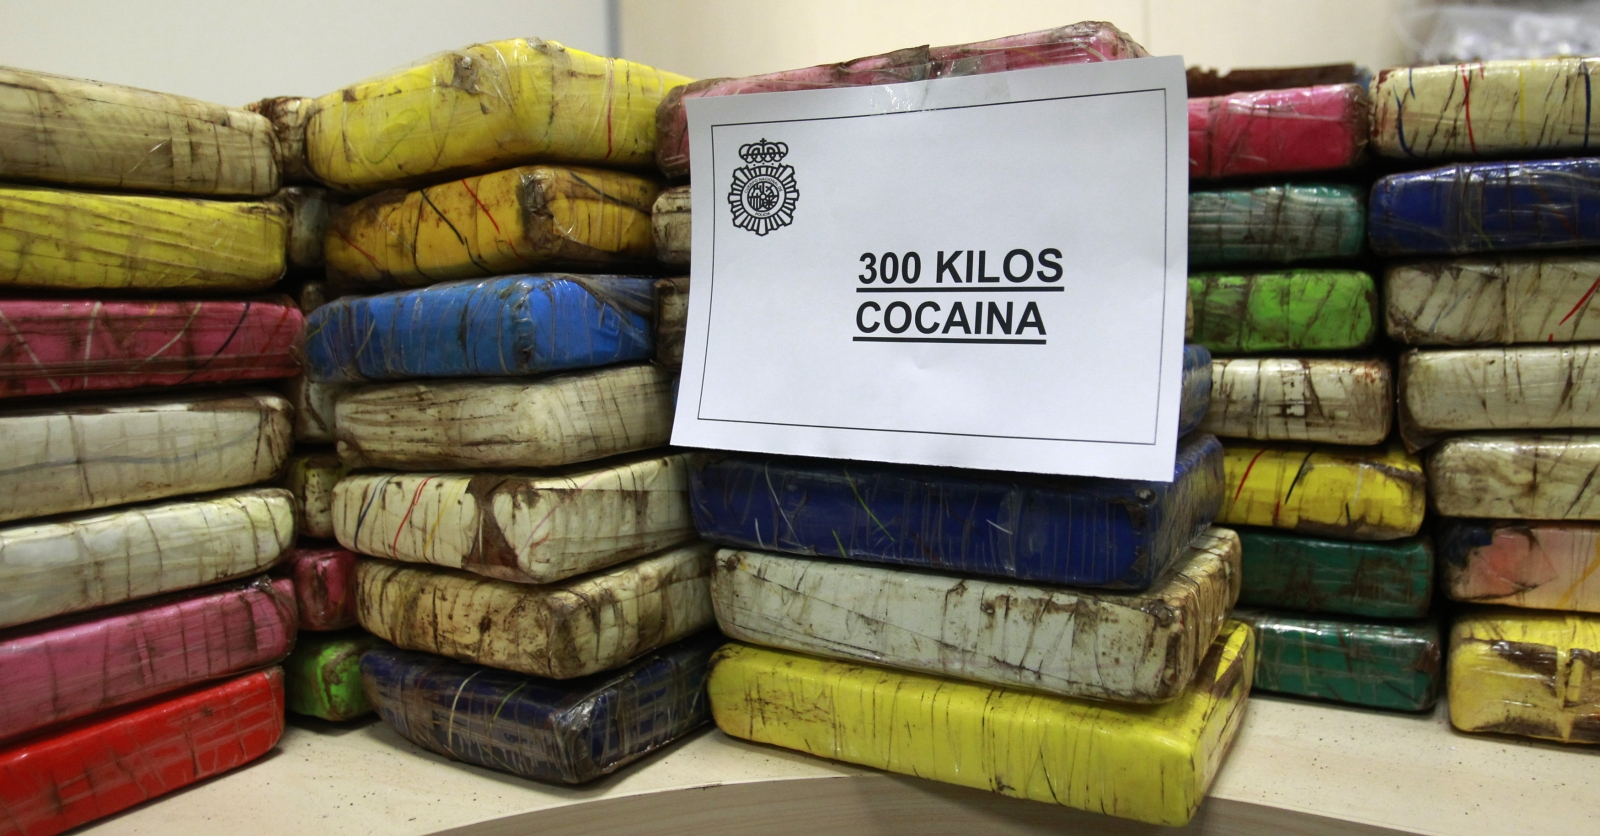 Packages of confiscated cocaine weighing 300 kilograms (661 pounds) are displayed at a police headquarter in Madrid January 18, 2011.